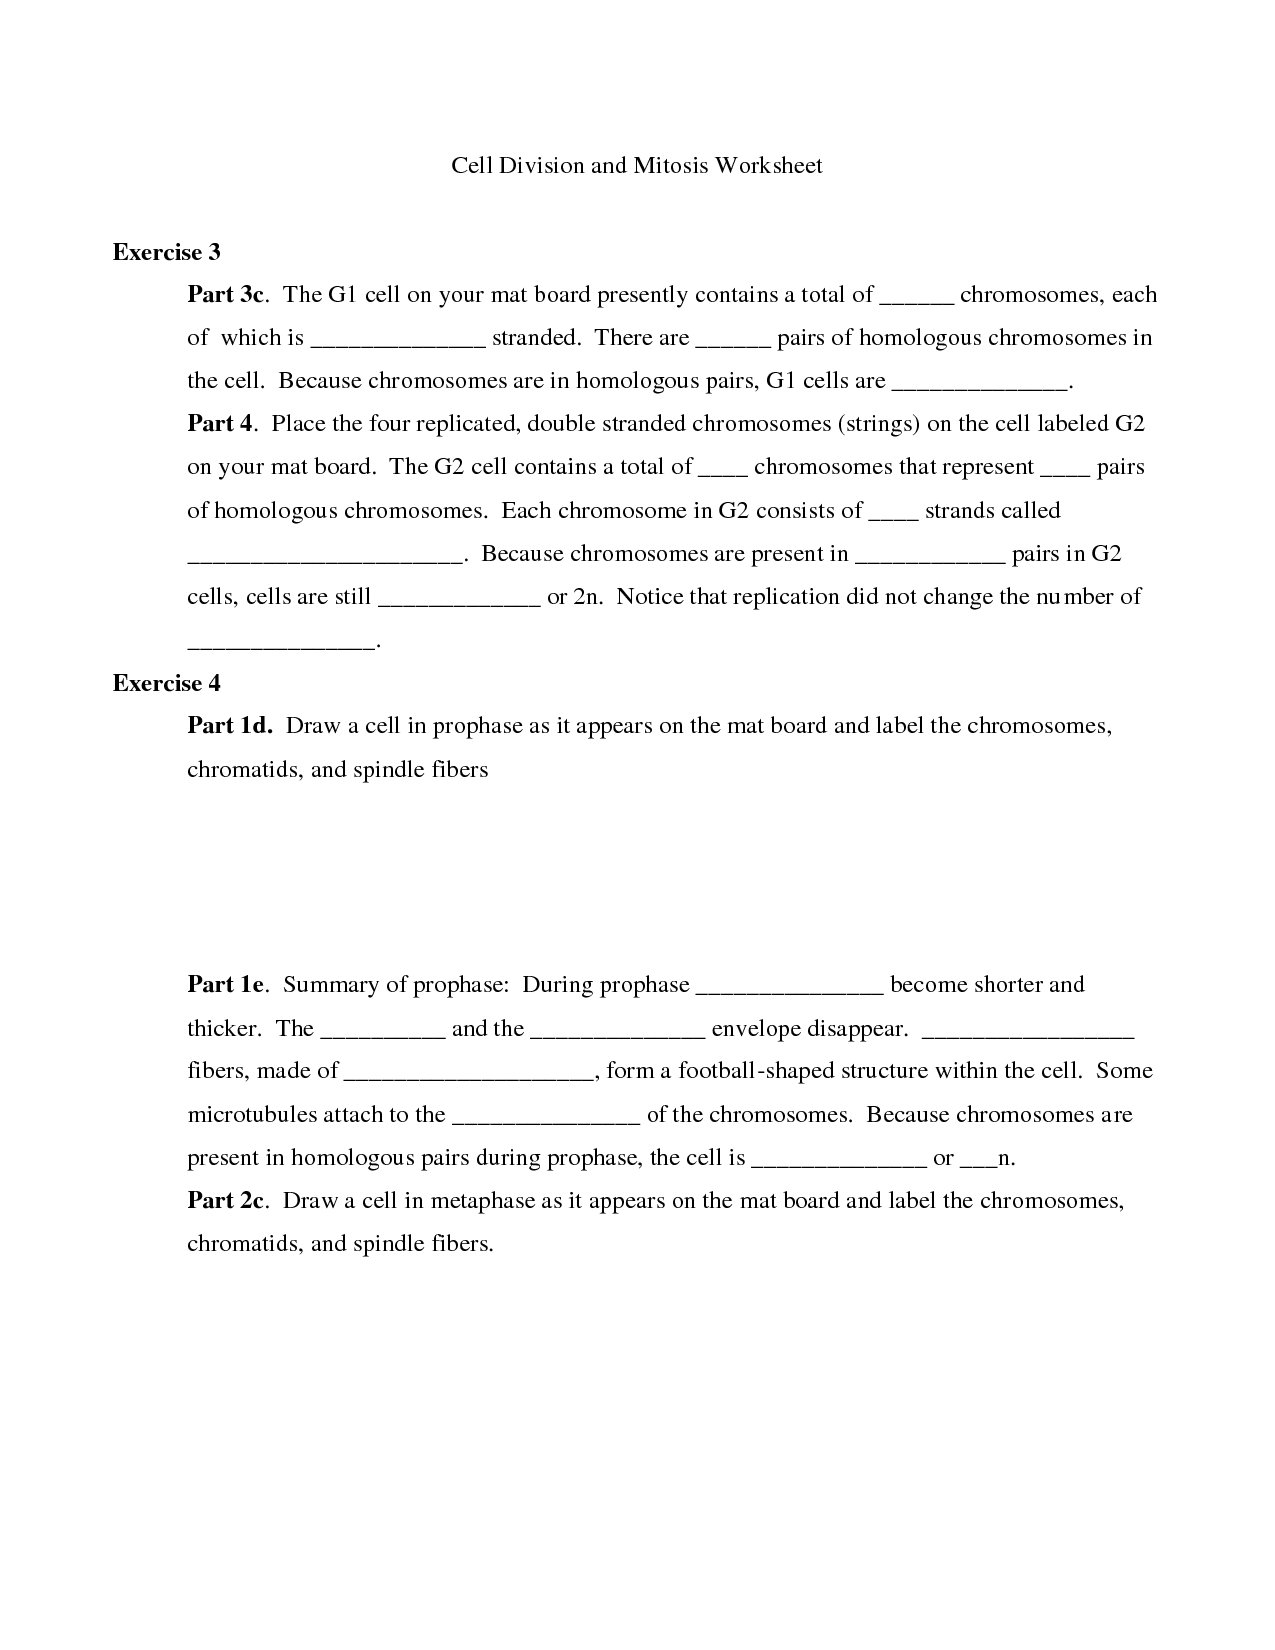 Cell Cycle And Mitosis Worksheet Answers